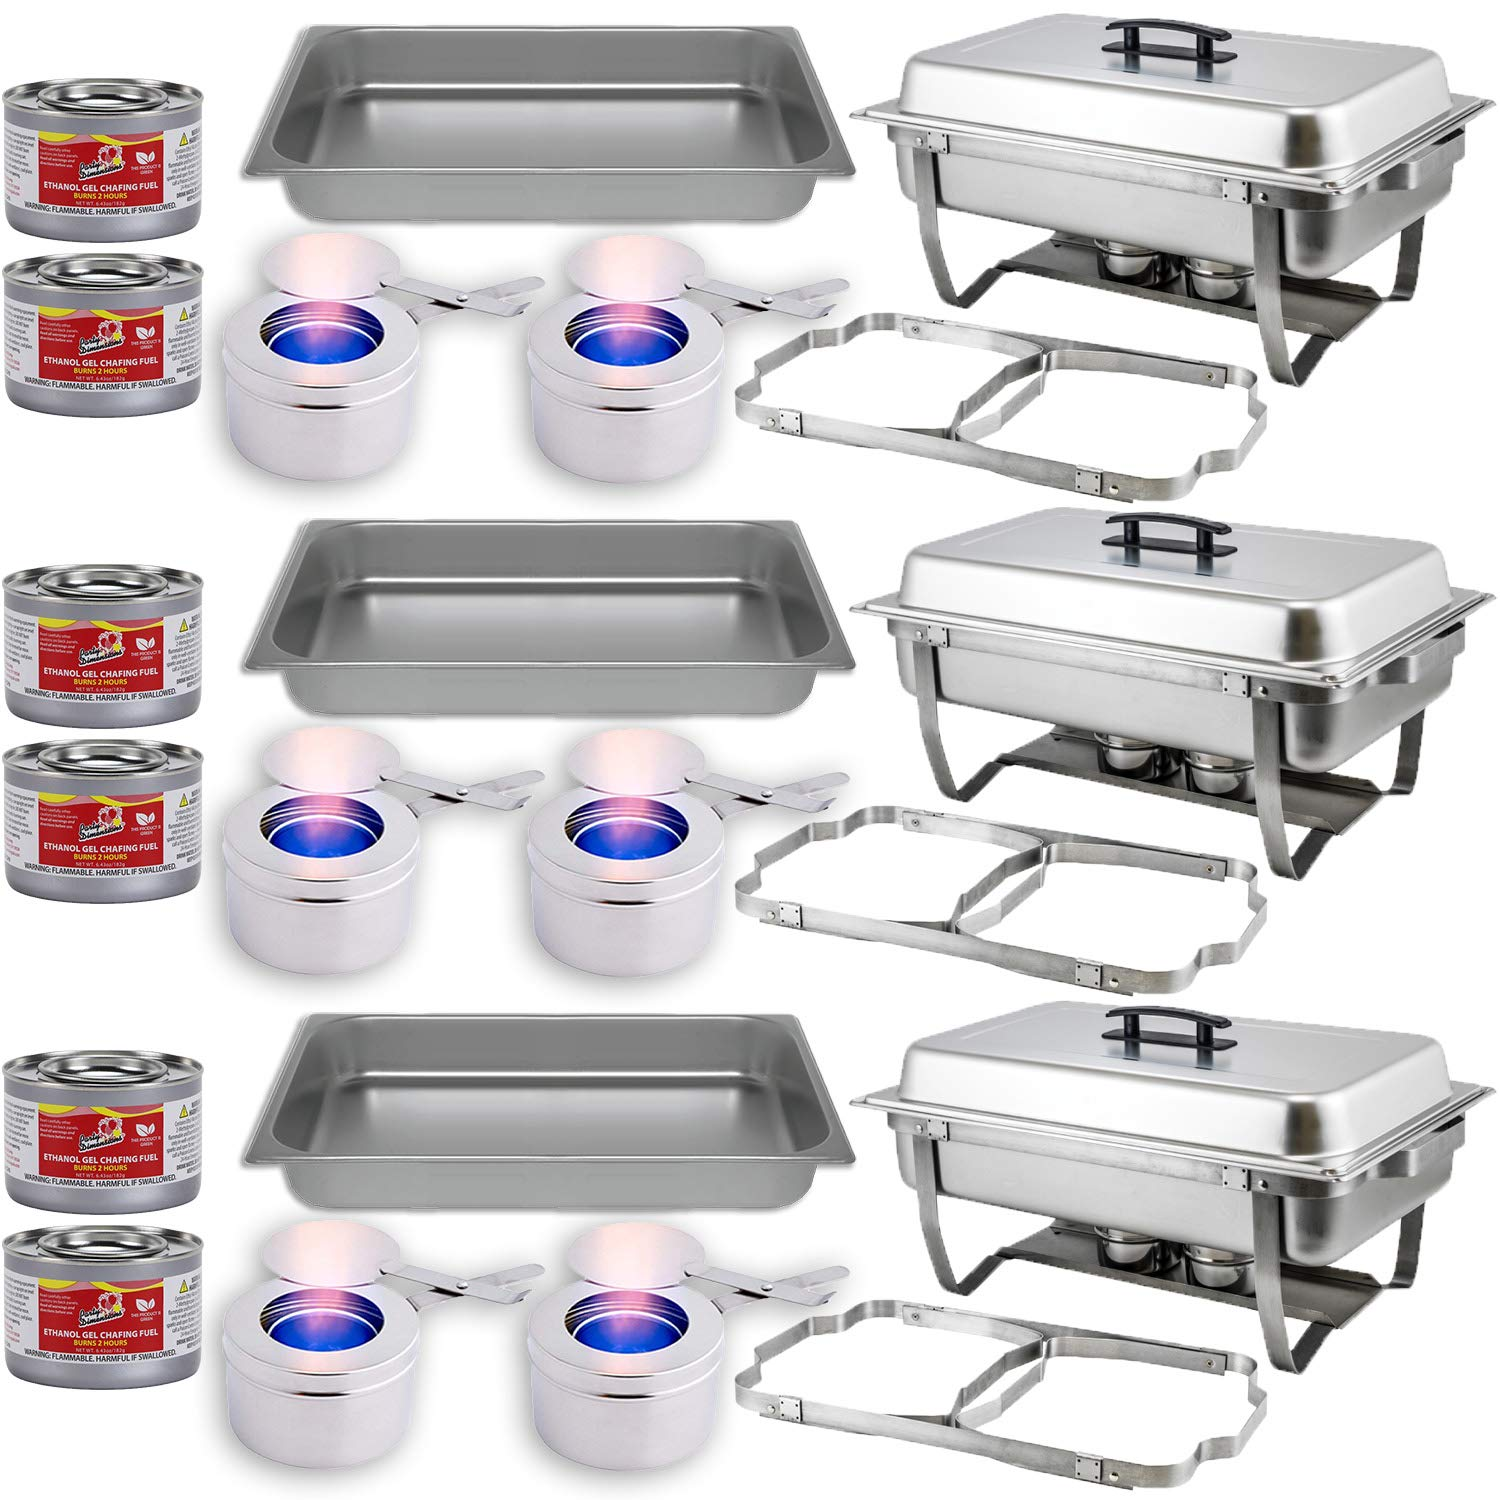 Chafing Dish Buffet Set w/Fuel - Folding Frame + Water Pan + Food Pan (8 qt) + 6 Fuel Holders + 6 Fuel Cans - 3 Full Warmer Kit, Stainless Steel Construction. by HeroFiber (Image #1)